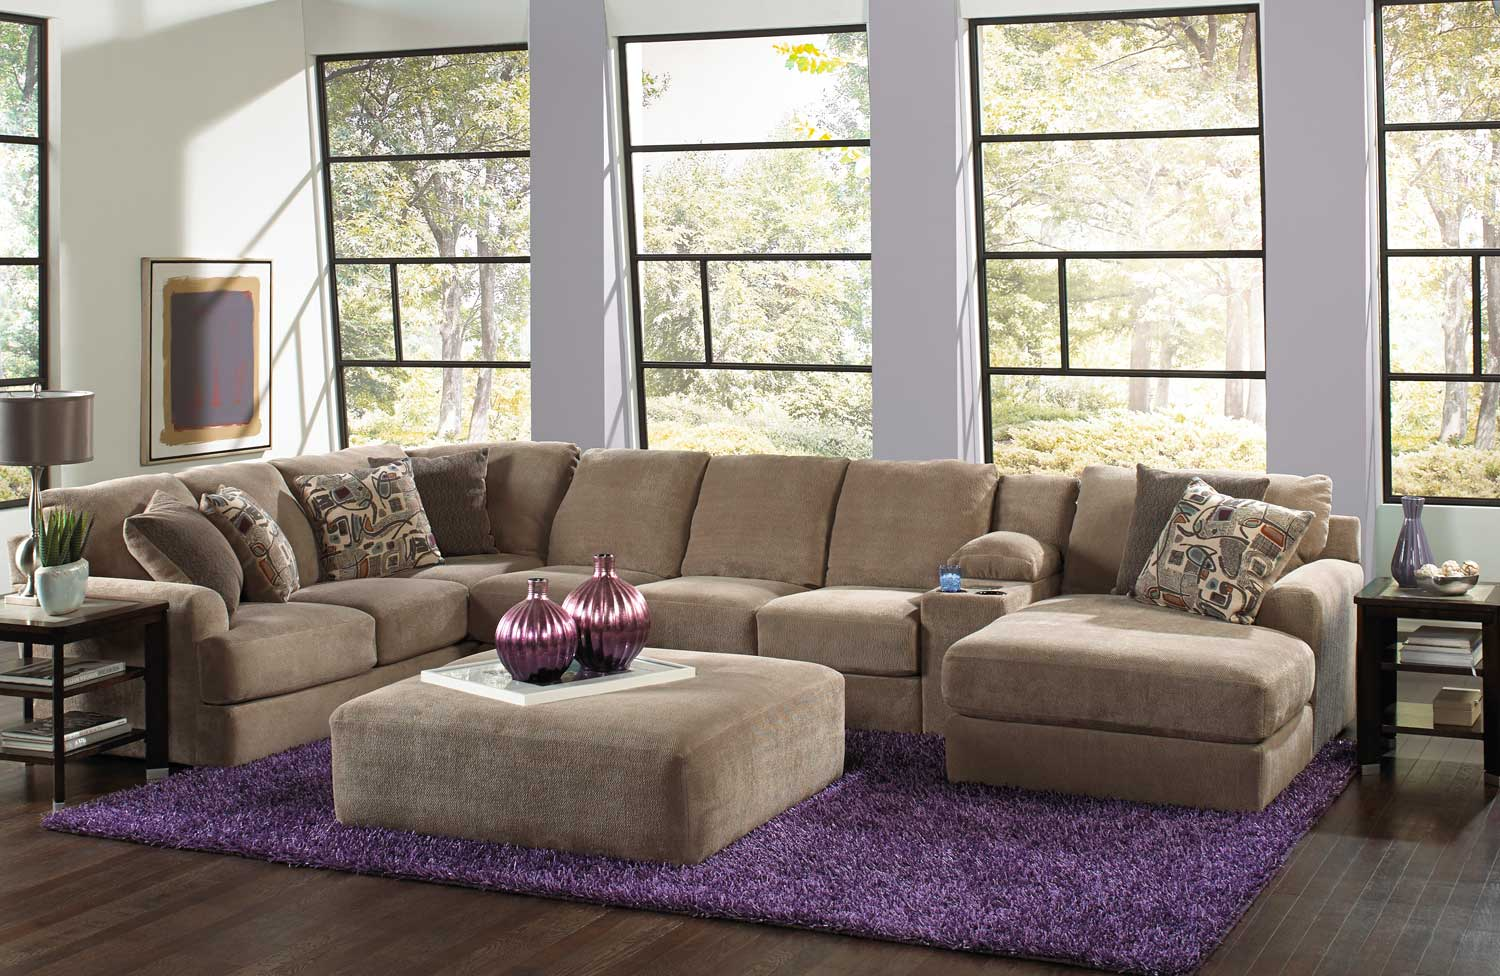 Jackson Malibu Large Chaise Sectional With Ottoman Set A